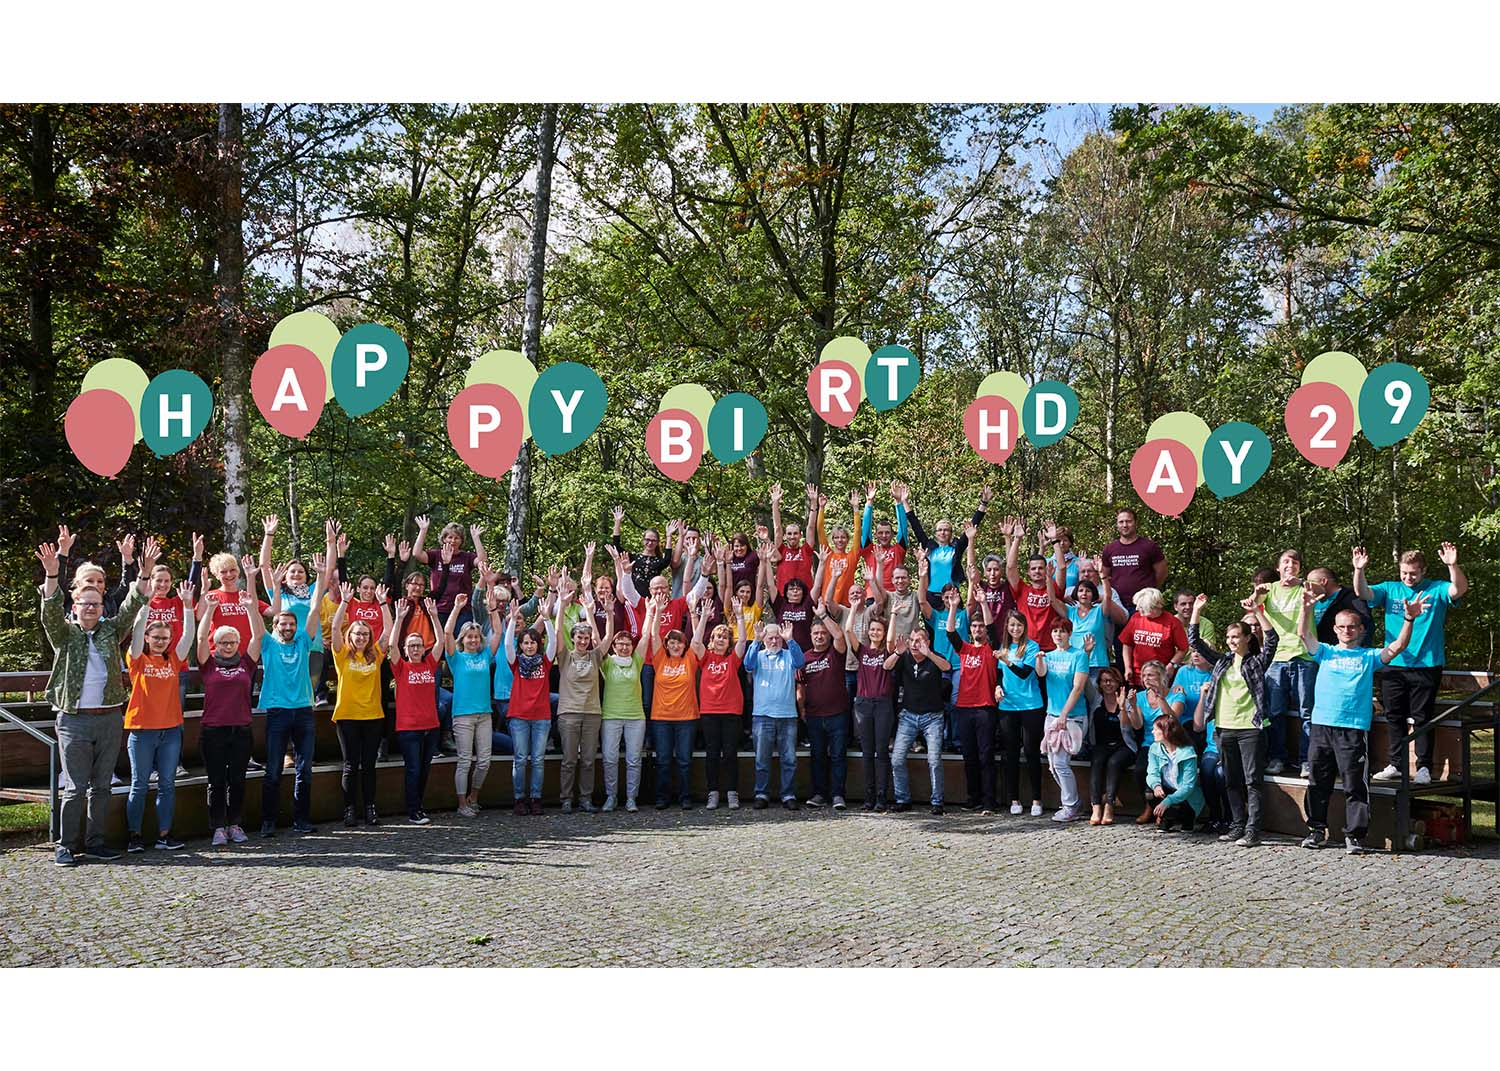 29 Jahre IMD Labor Oderland - Happy birthday